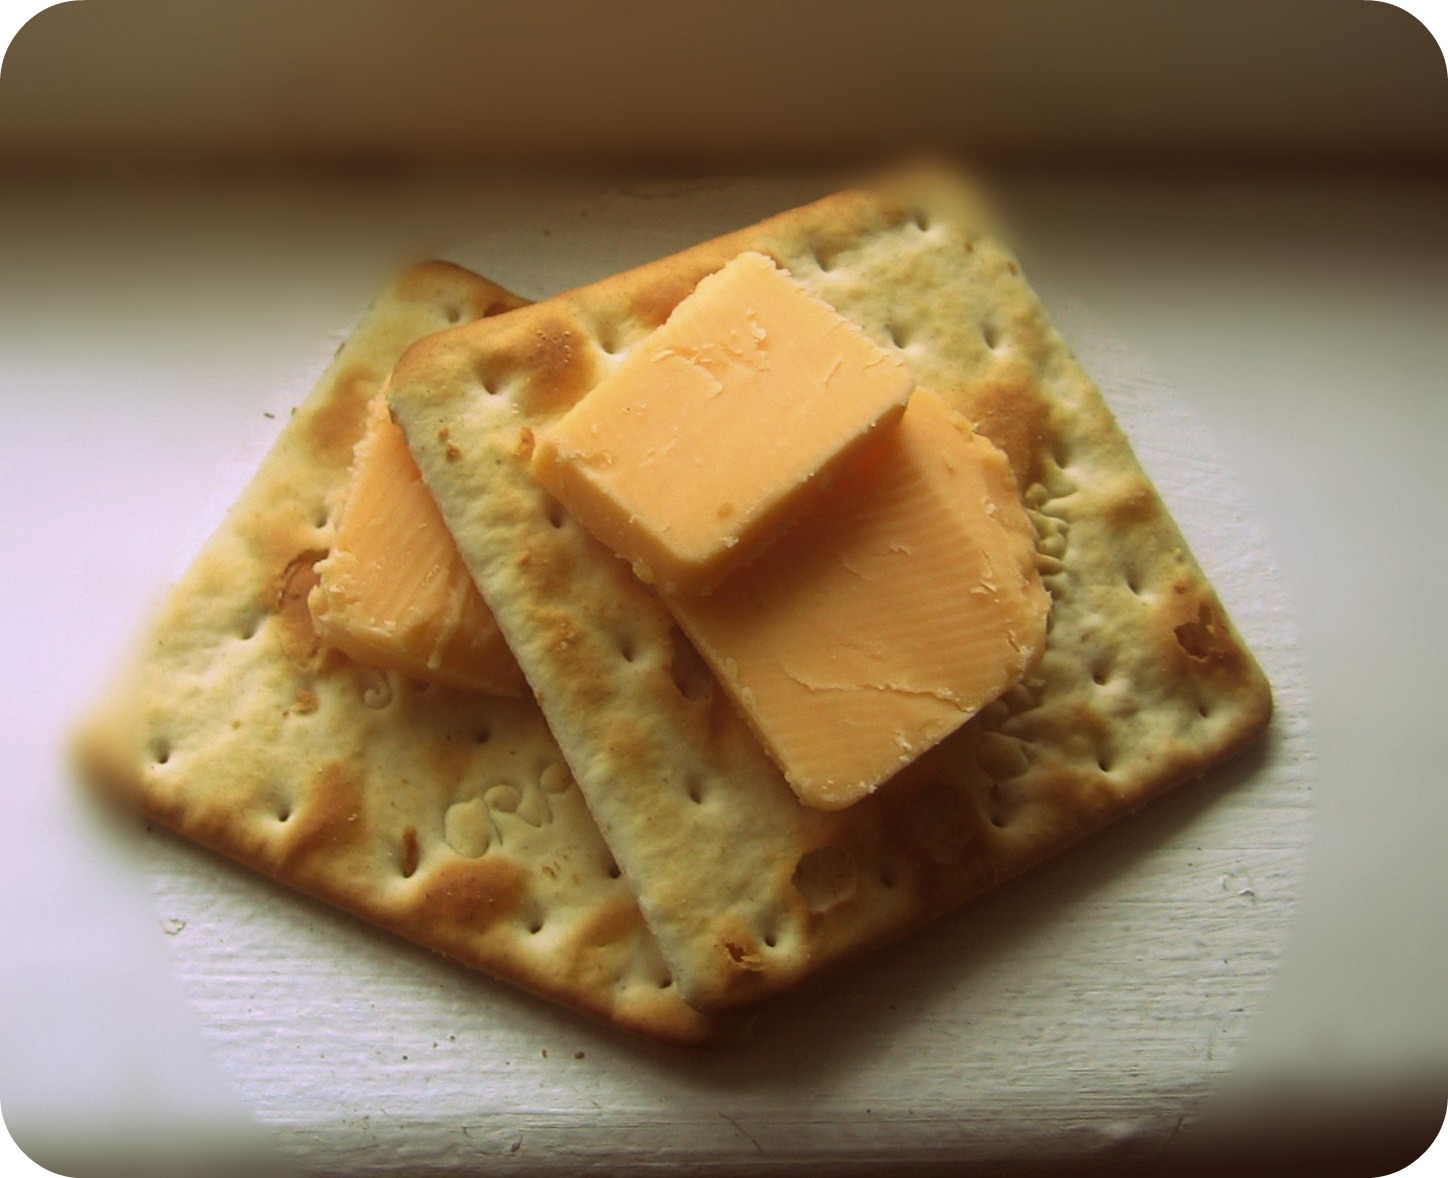 living awesomely: cheese and crackers, margie!*